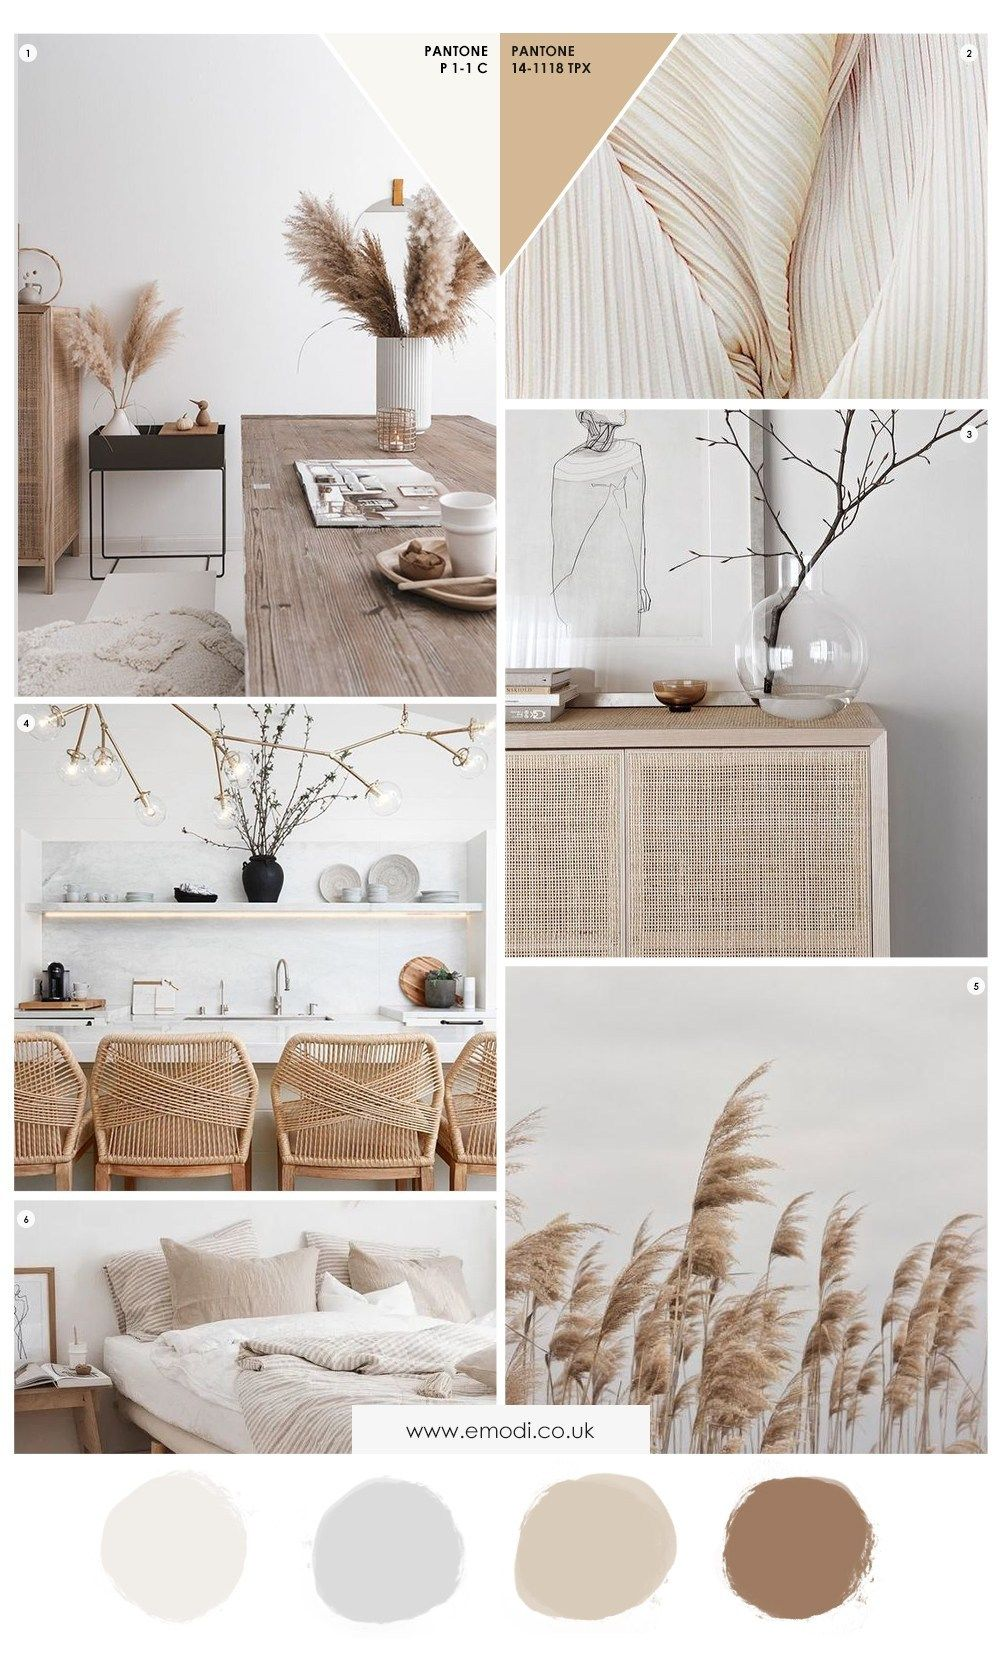 Beige is the new grey.. a return of pale warm colours replacing the cooler shades of grey that have dominated for the last few years.